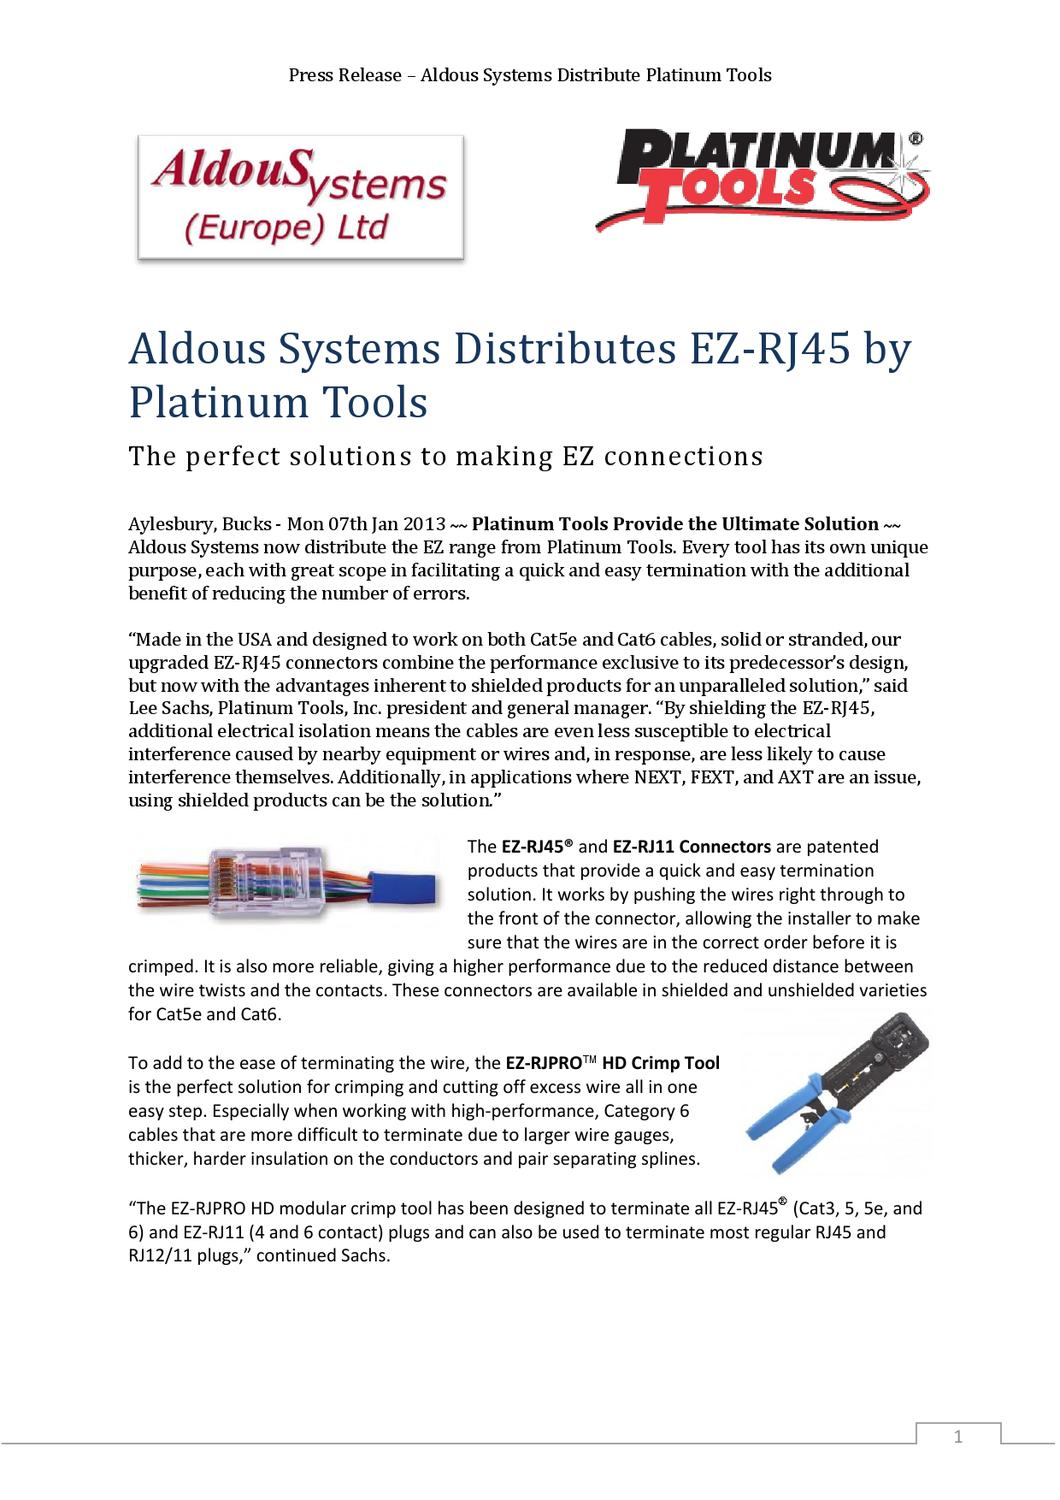 Platinum Tools Press Release By Jason Aldous Issuu The Wiring Of Conductors To Rj45 Has Also Been Established